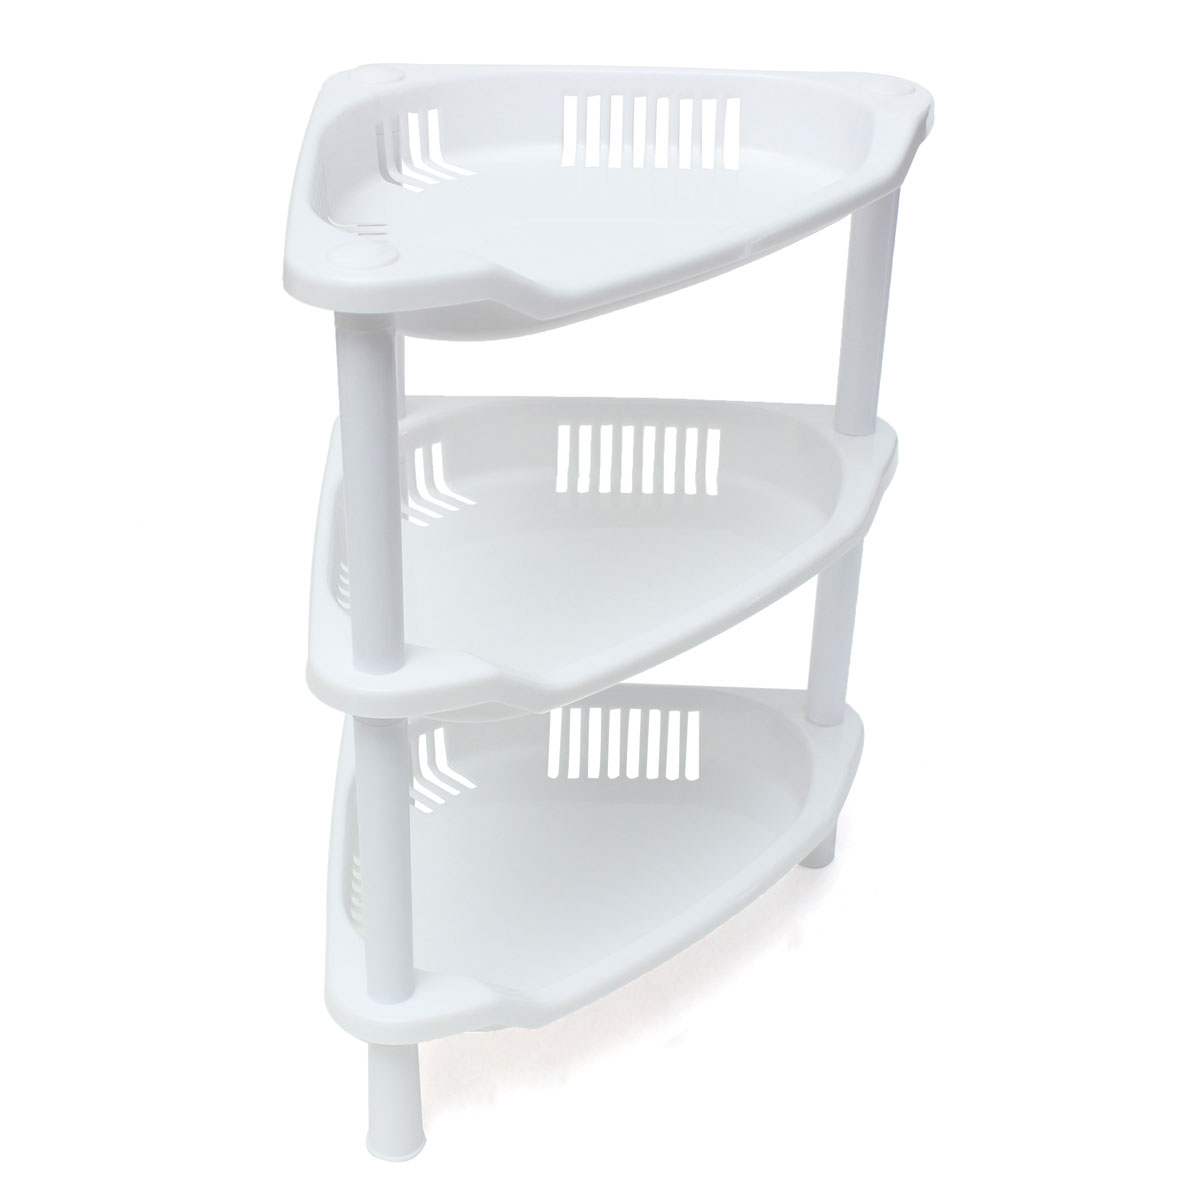 3 tier plastic corner shelf unit organizer cabinet - White bathroom corner shelf unit ...